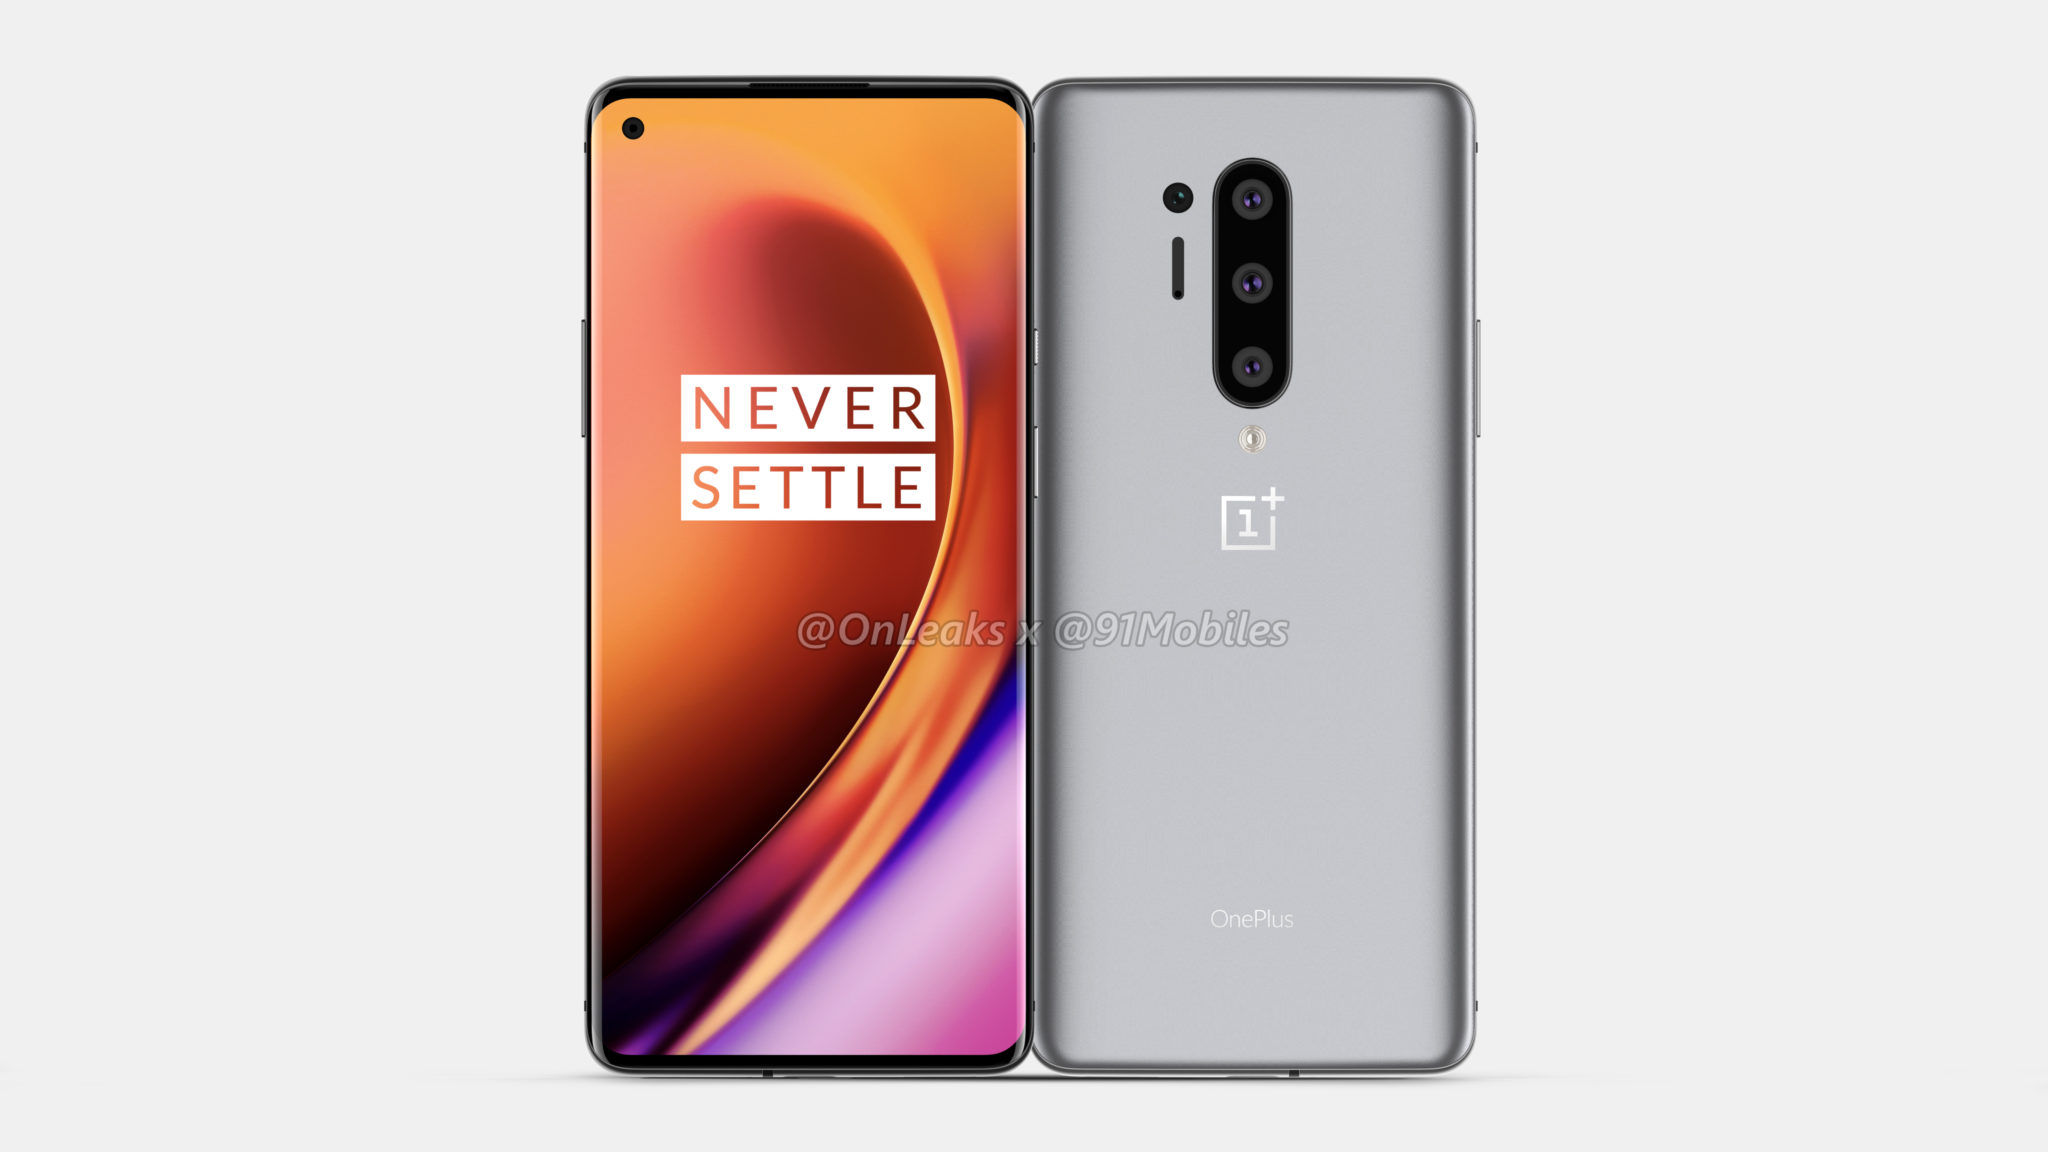 OnePlus 8 series may introduce in the second half of 2020- OnePlus 8 Pro renders image 2